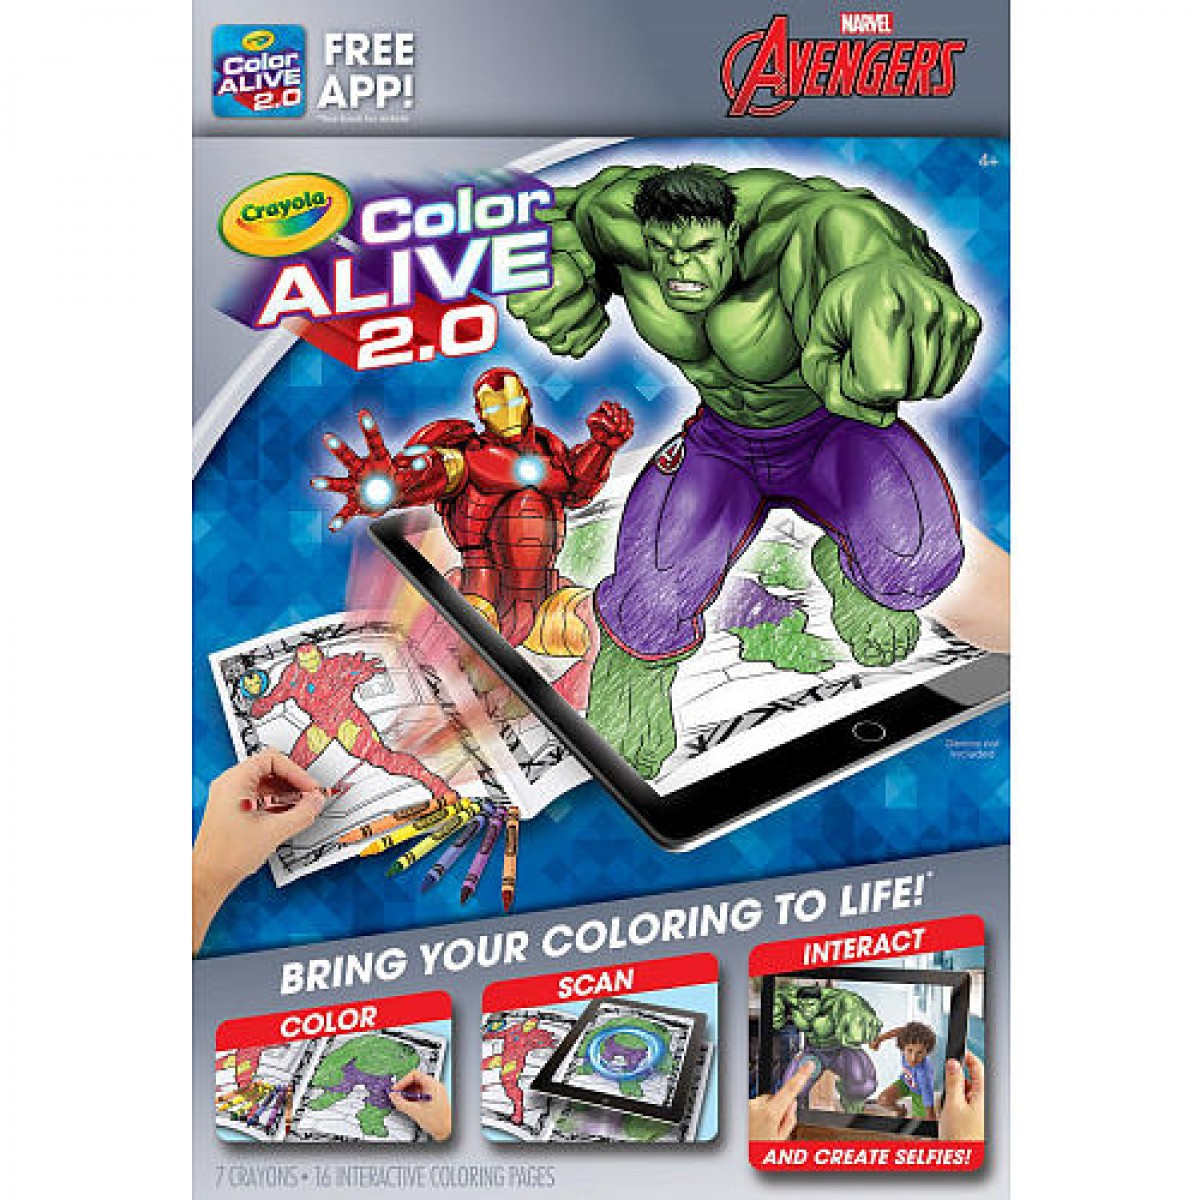 Crayola Color Alive 2.0 Interactive Coloring Book - Marvel Avengers